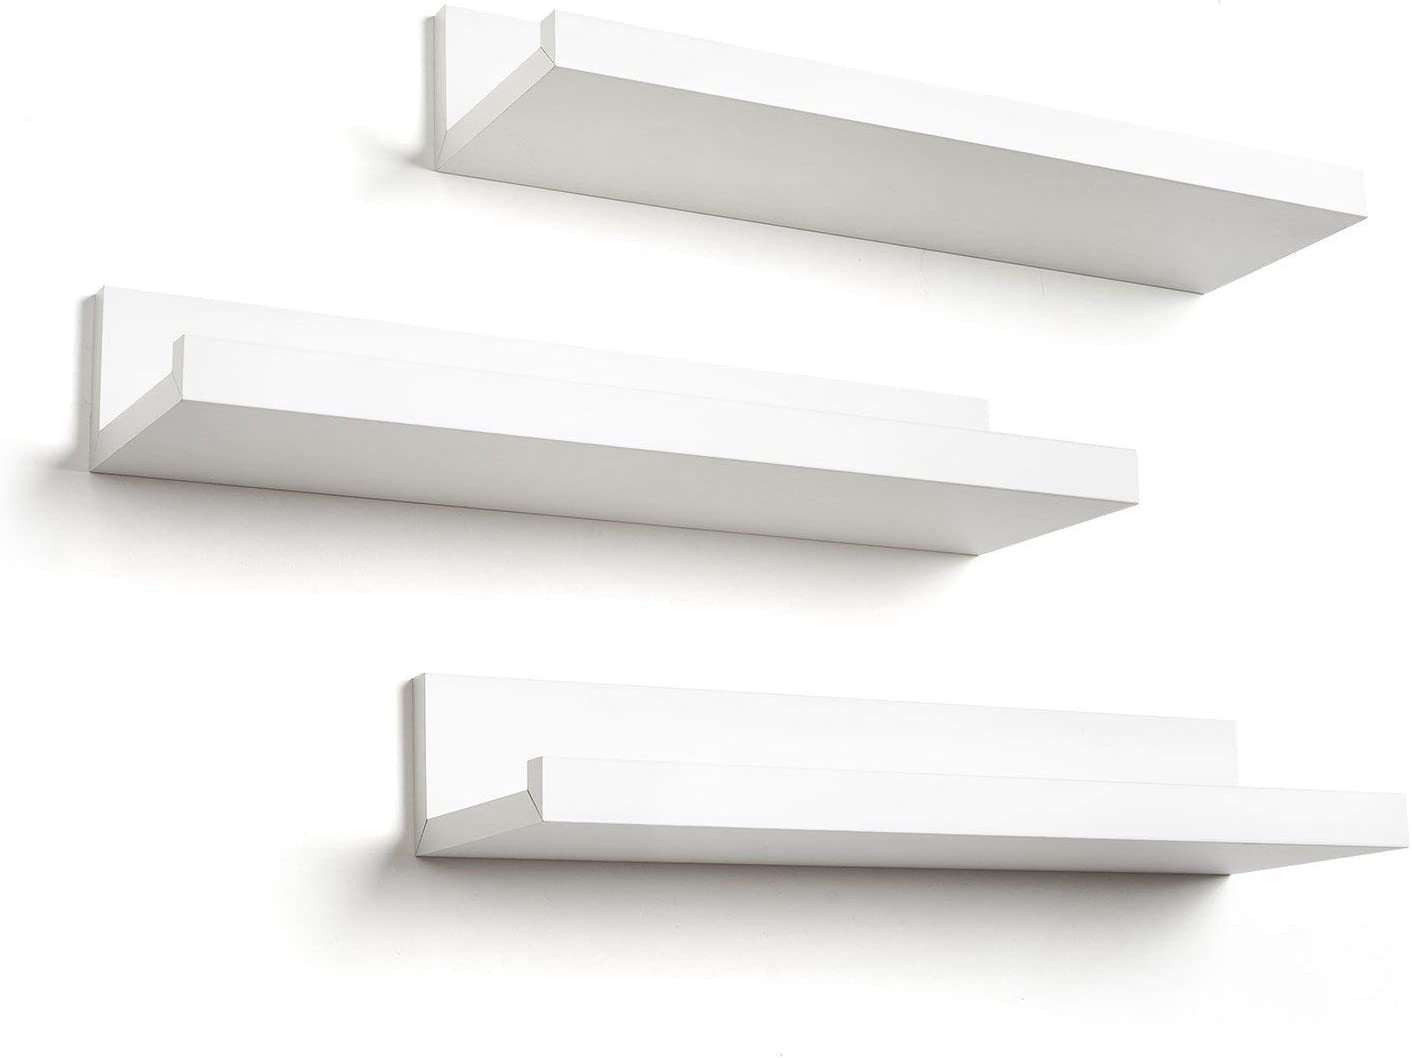 Amazon Com Americanflat 14 Inch Floating Shelves Set Of 3 In White Composite Wood Wall Mounted Storage Shelves For Bedroom Living Room Bathroom Kitchen Office And More Home Kitchen